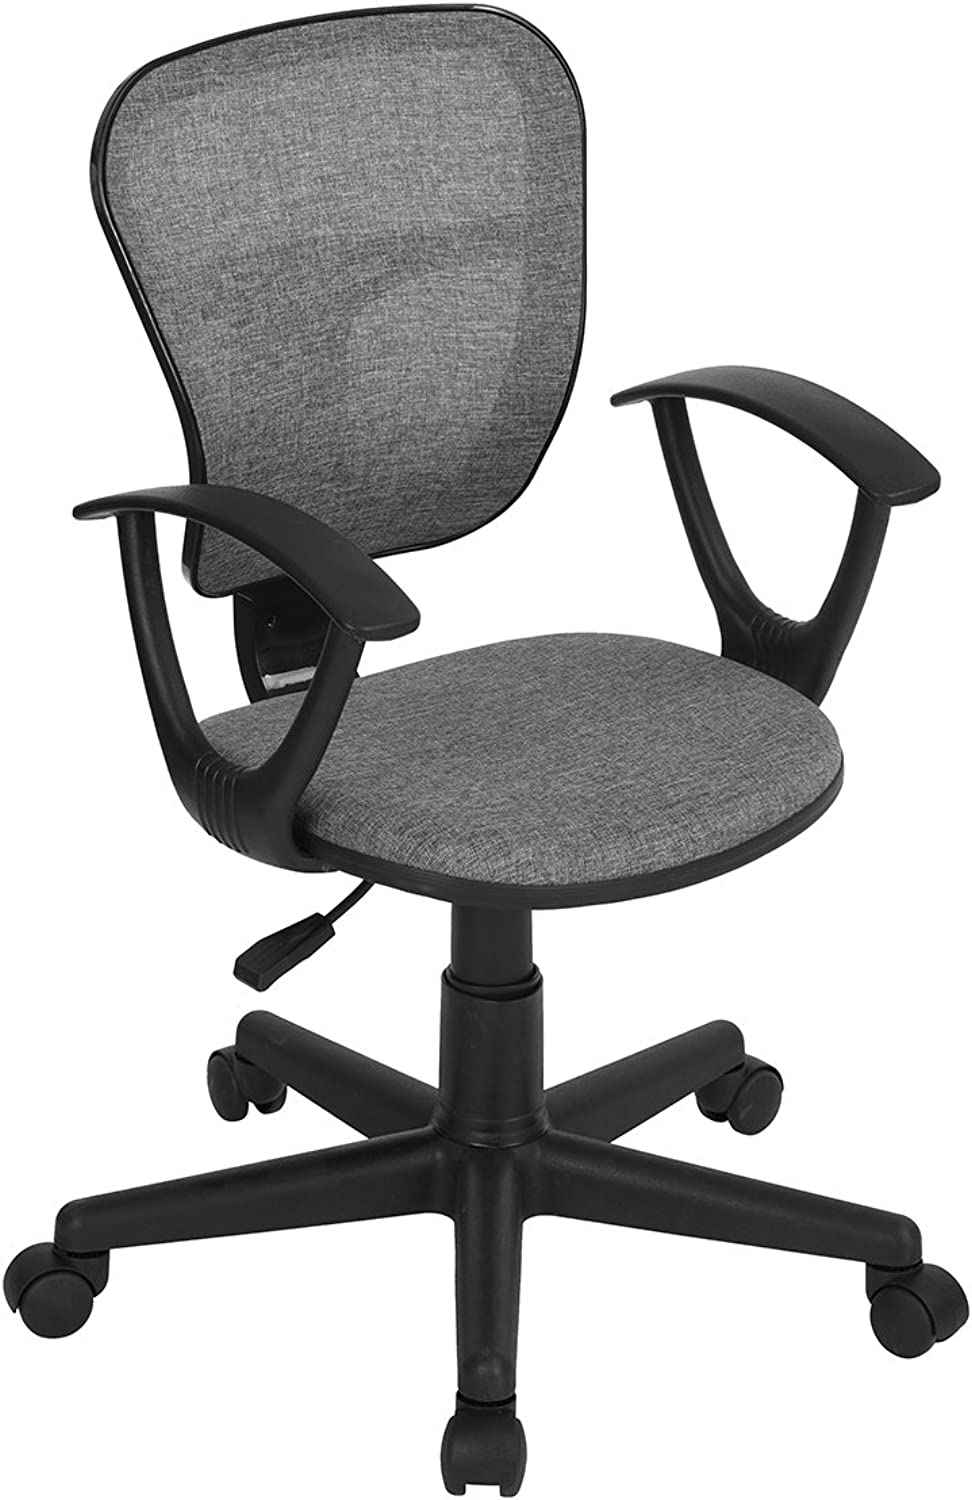 ZF Collections Flying Fabric Office Desk Chair (Grey)